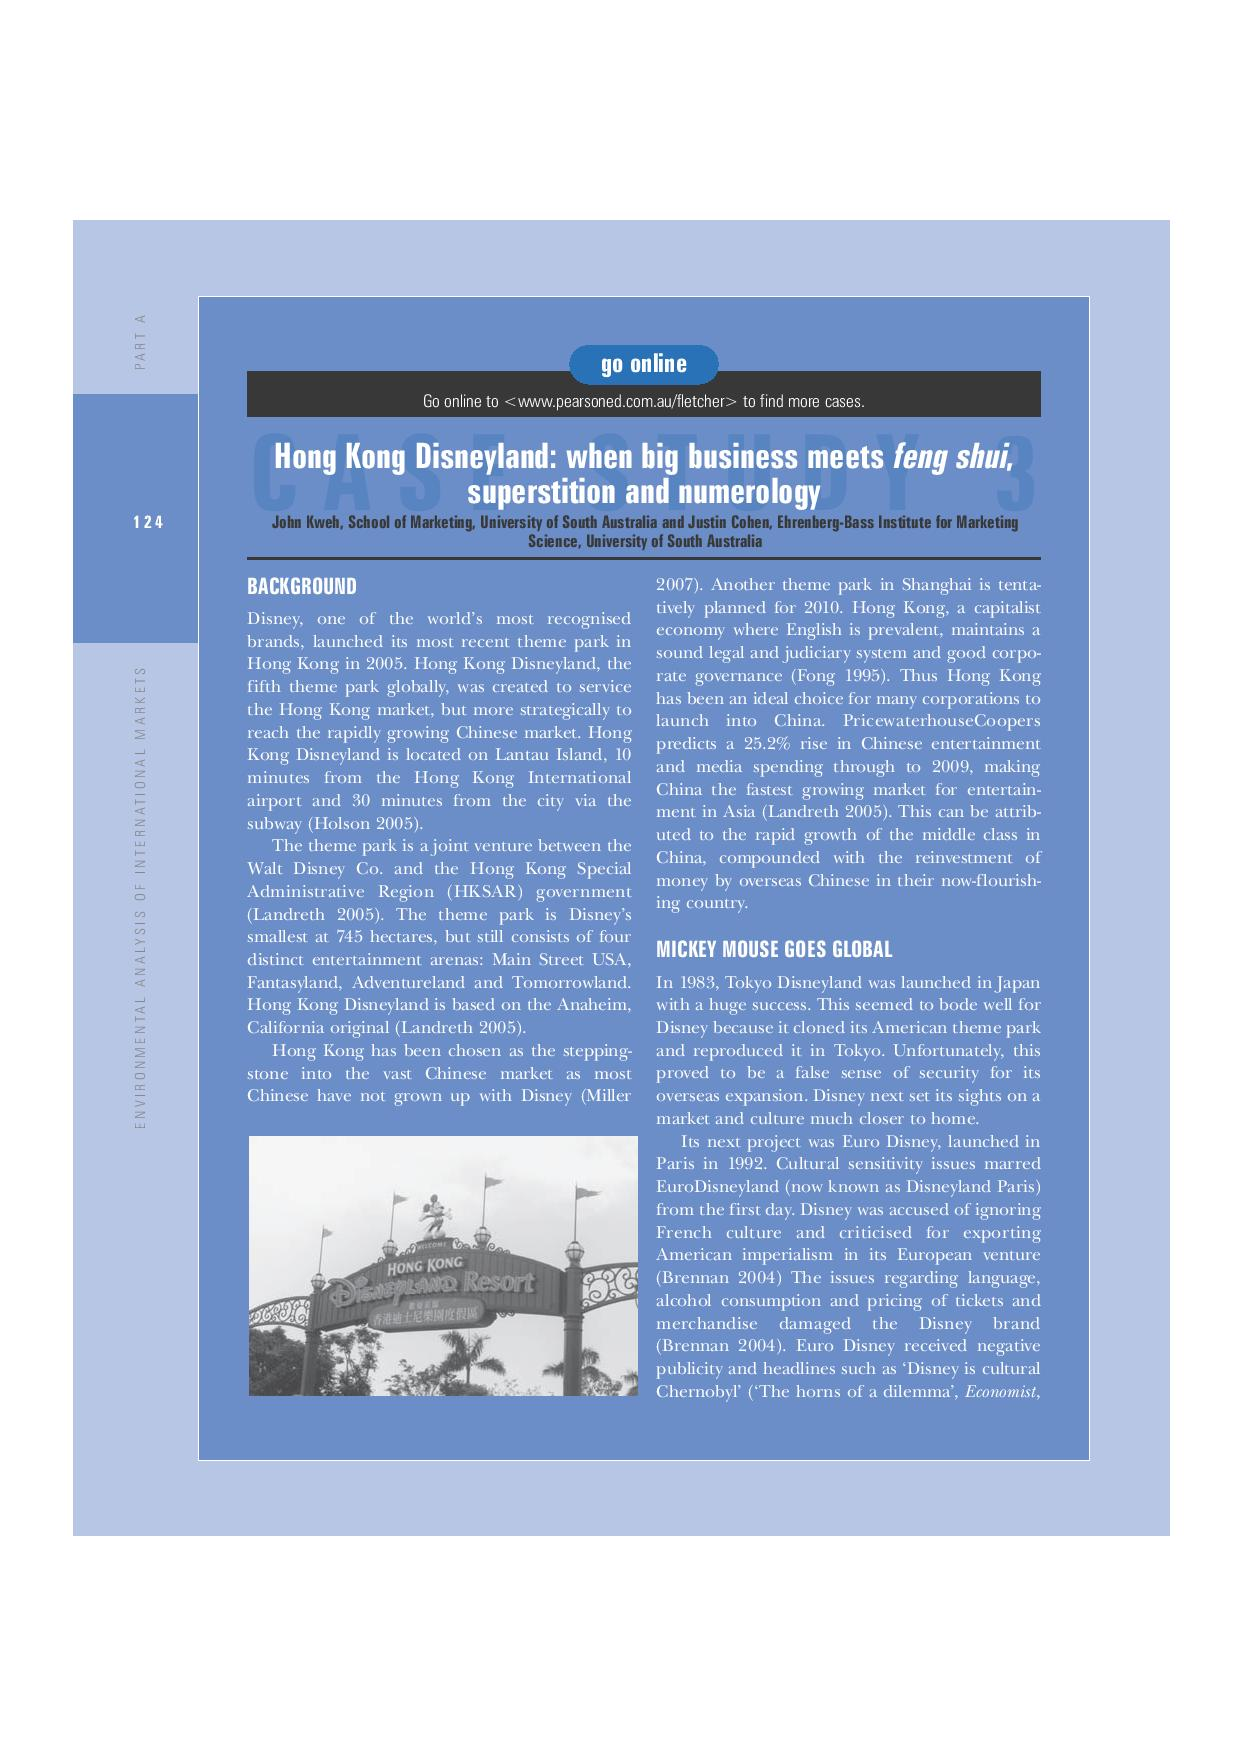 hong_kong_disneyland_when_big_business_meets_feng shui_superstition_and_numerology-page-001.jpg